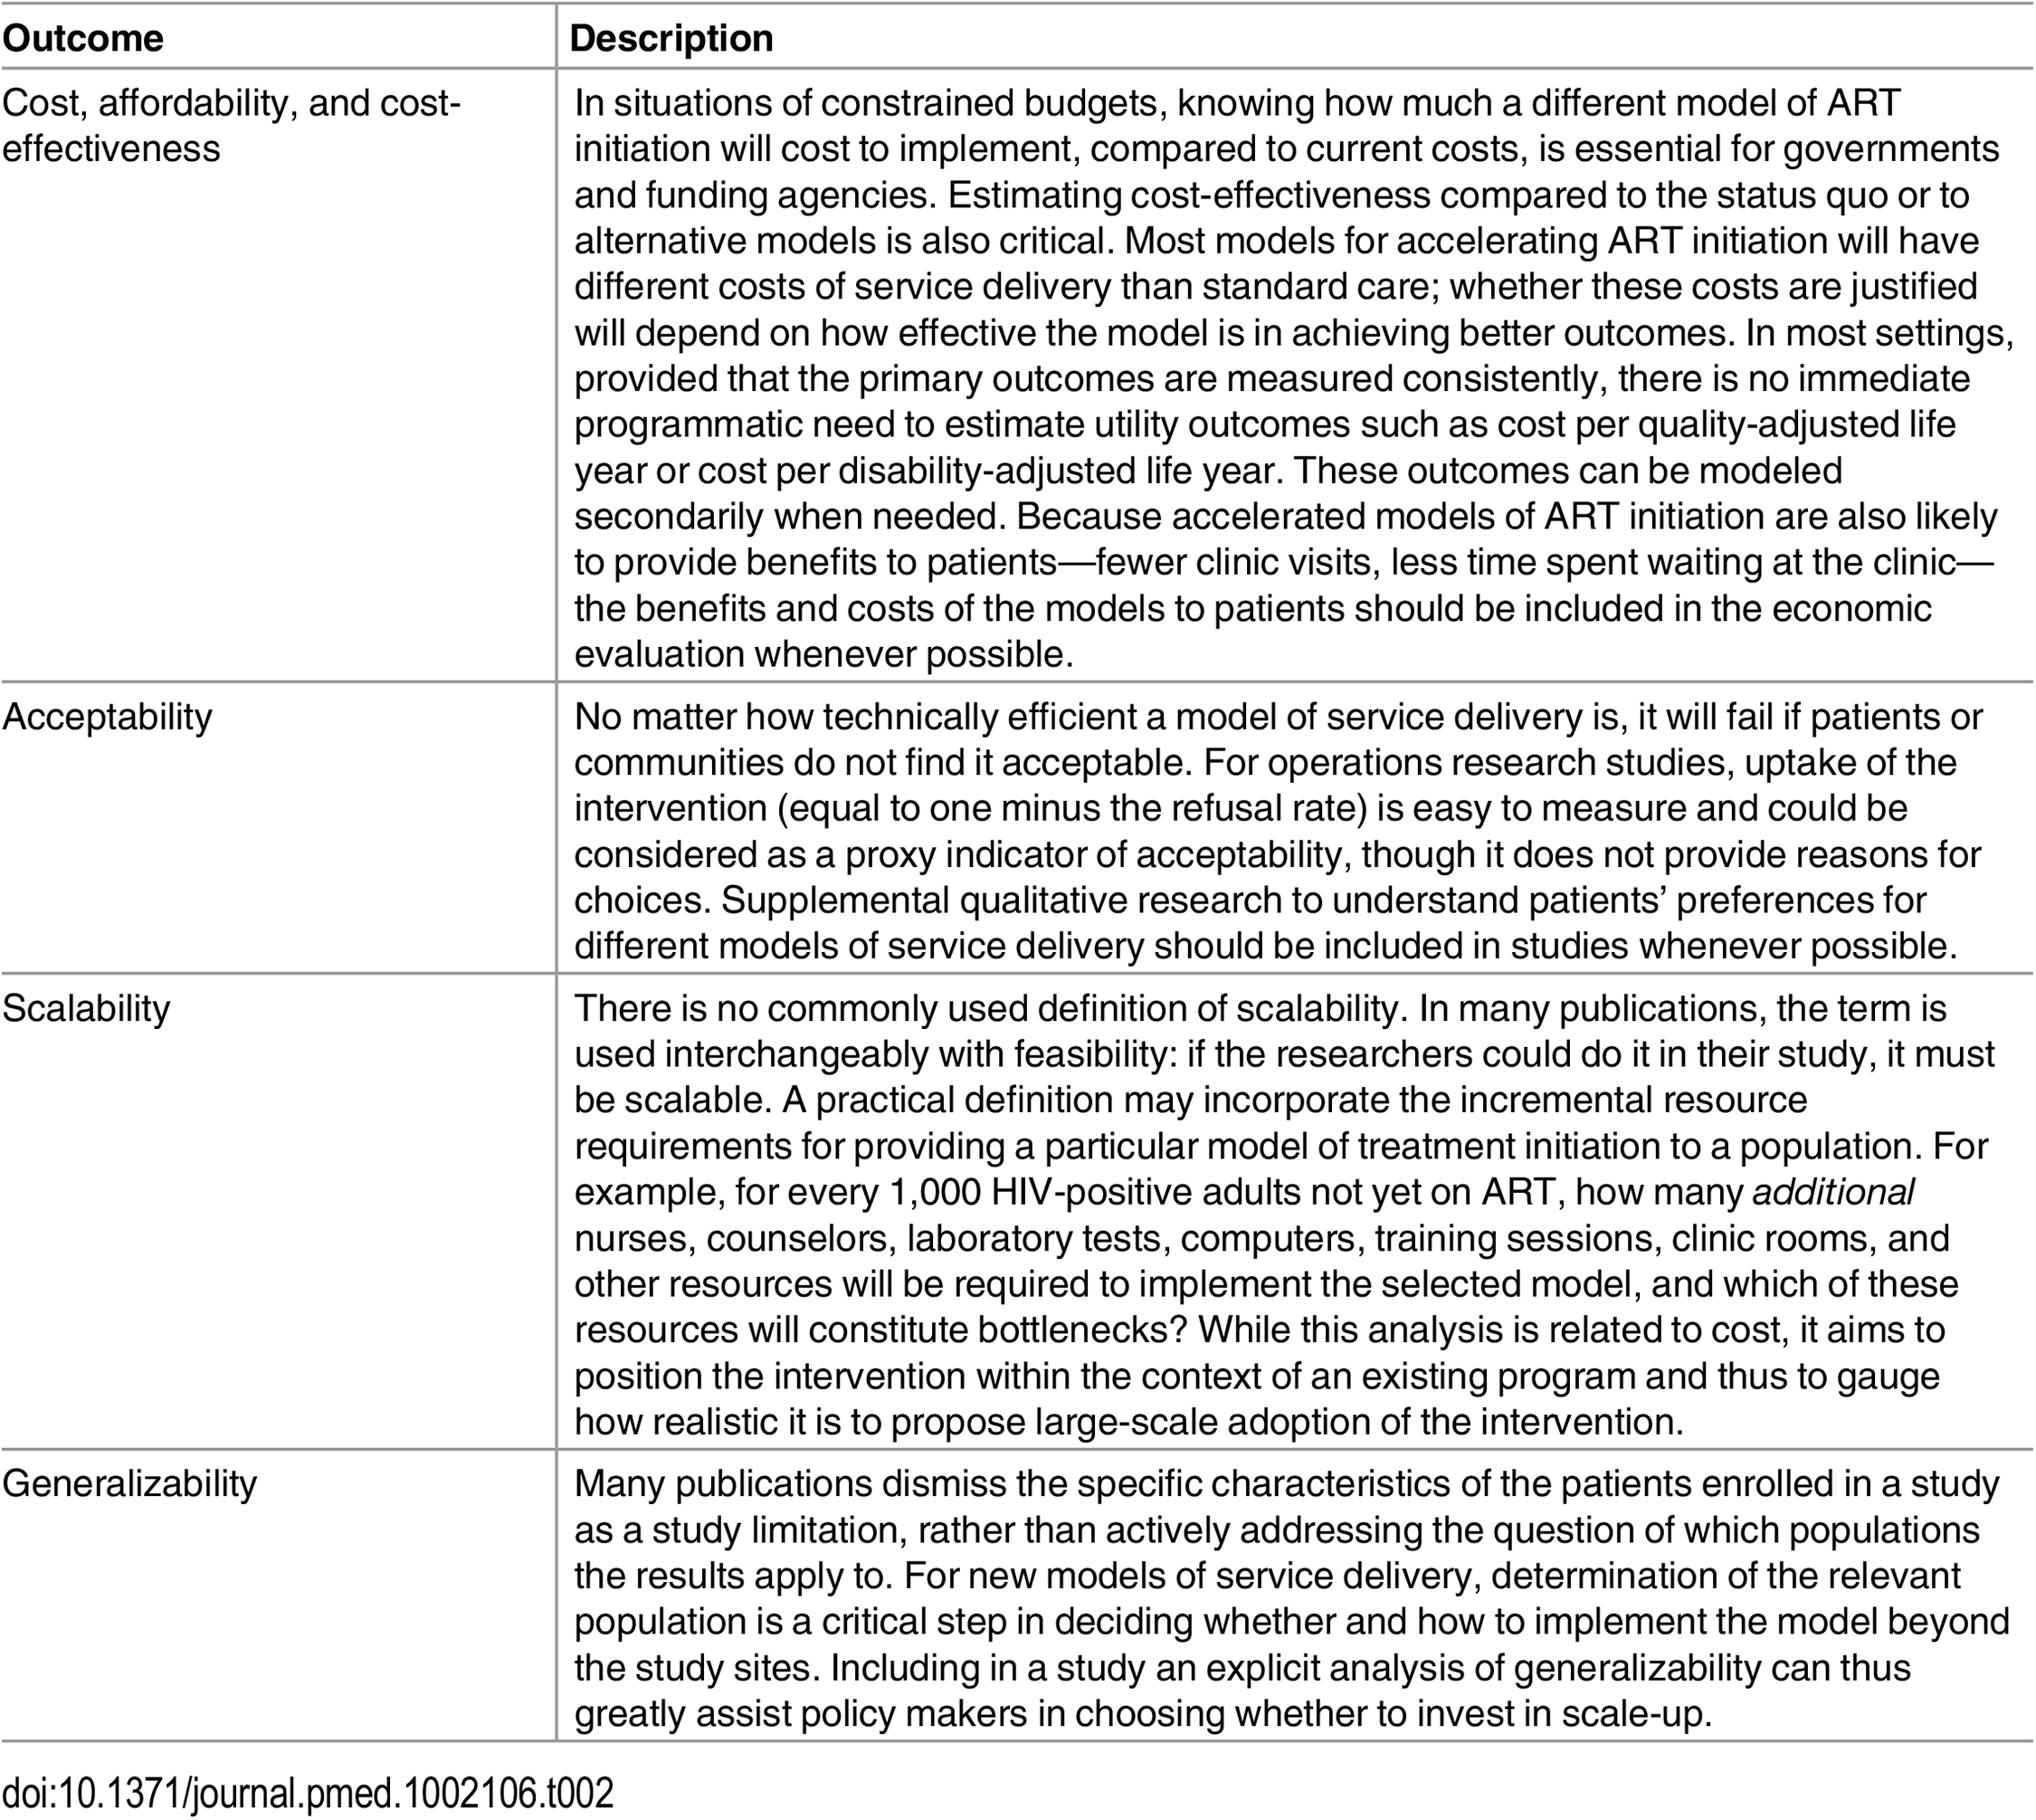 Proposed secondary outcomes for evaluation of ART initiation in general adult populations.